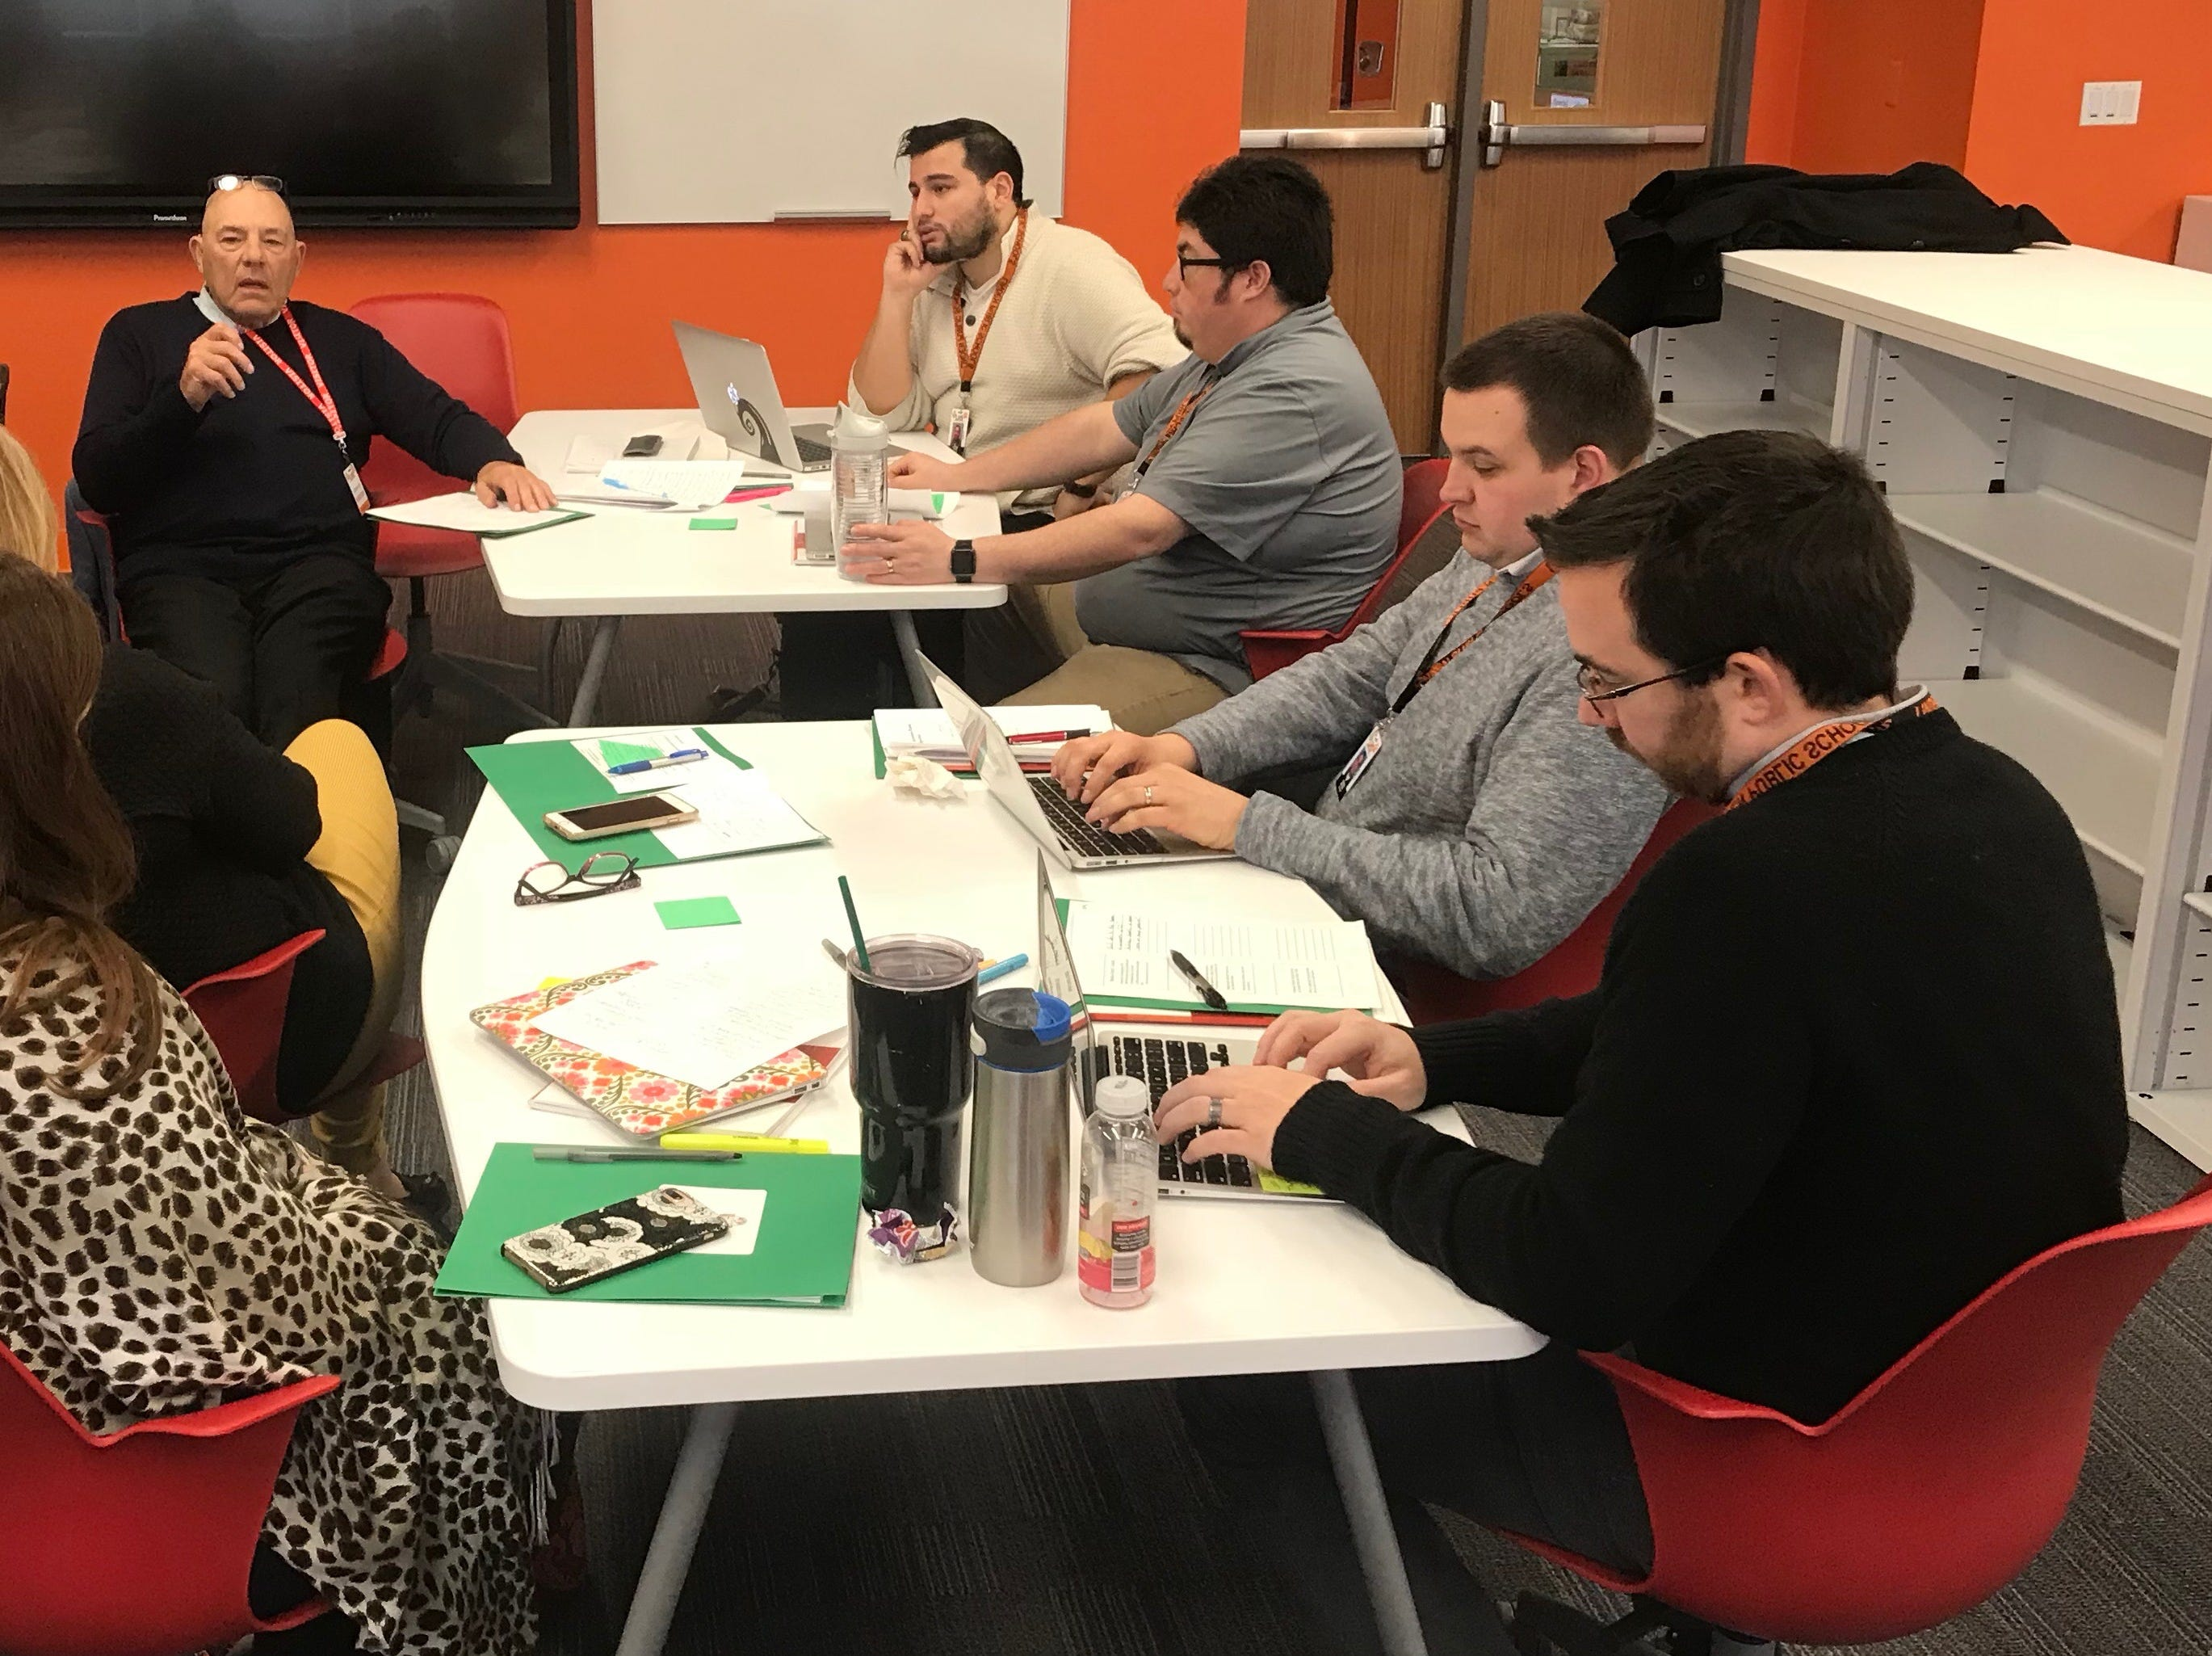 Harvey Silver, back left, of The Thoughtful Classroom leads a discussion with Linden High School teachers to go over a lesson delivered by teachers Jorge Alvarez and Anthony Fischetti, back right, in the LHS Learning Commons.